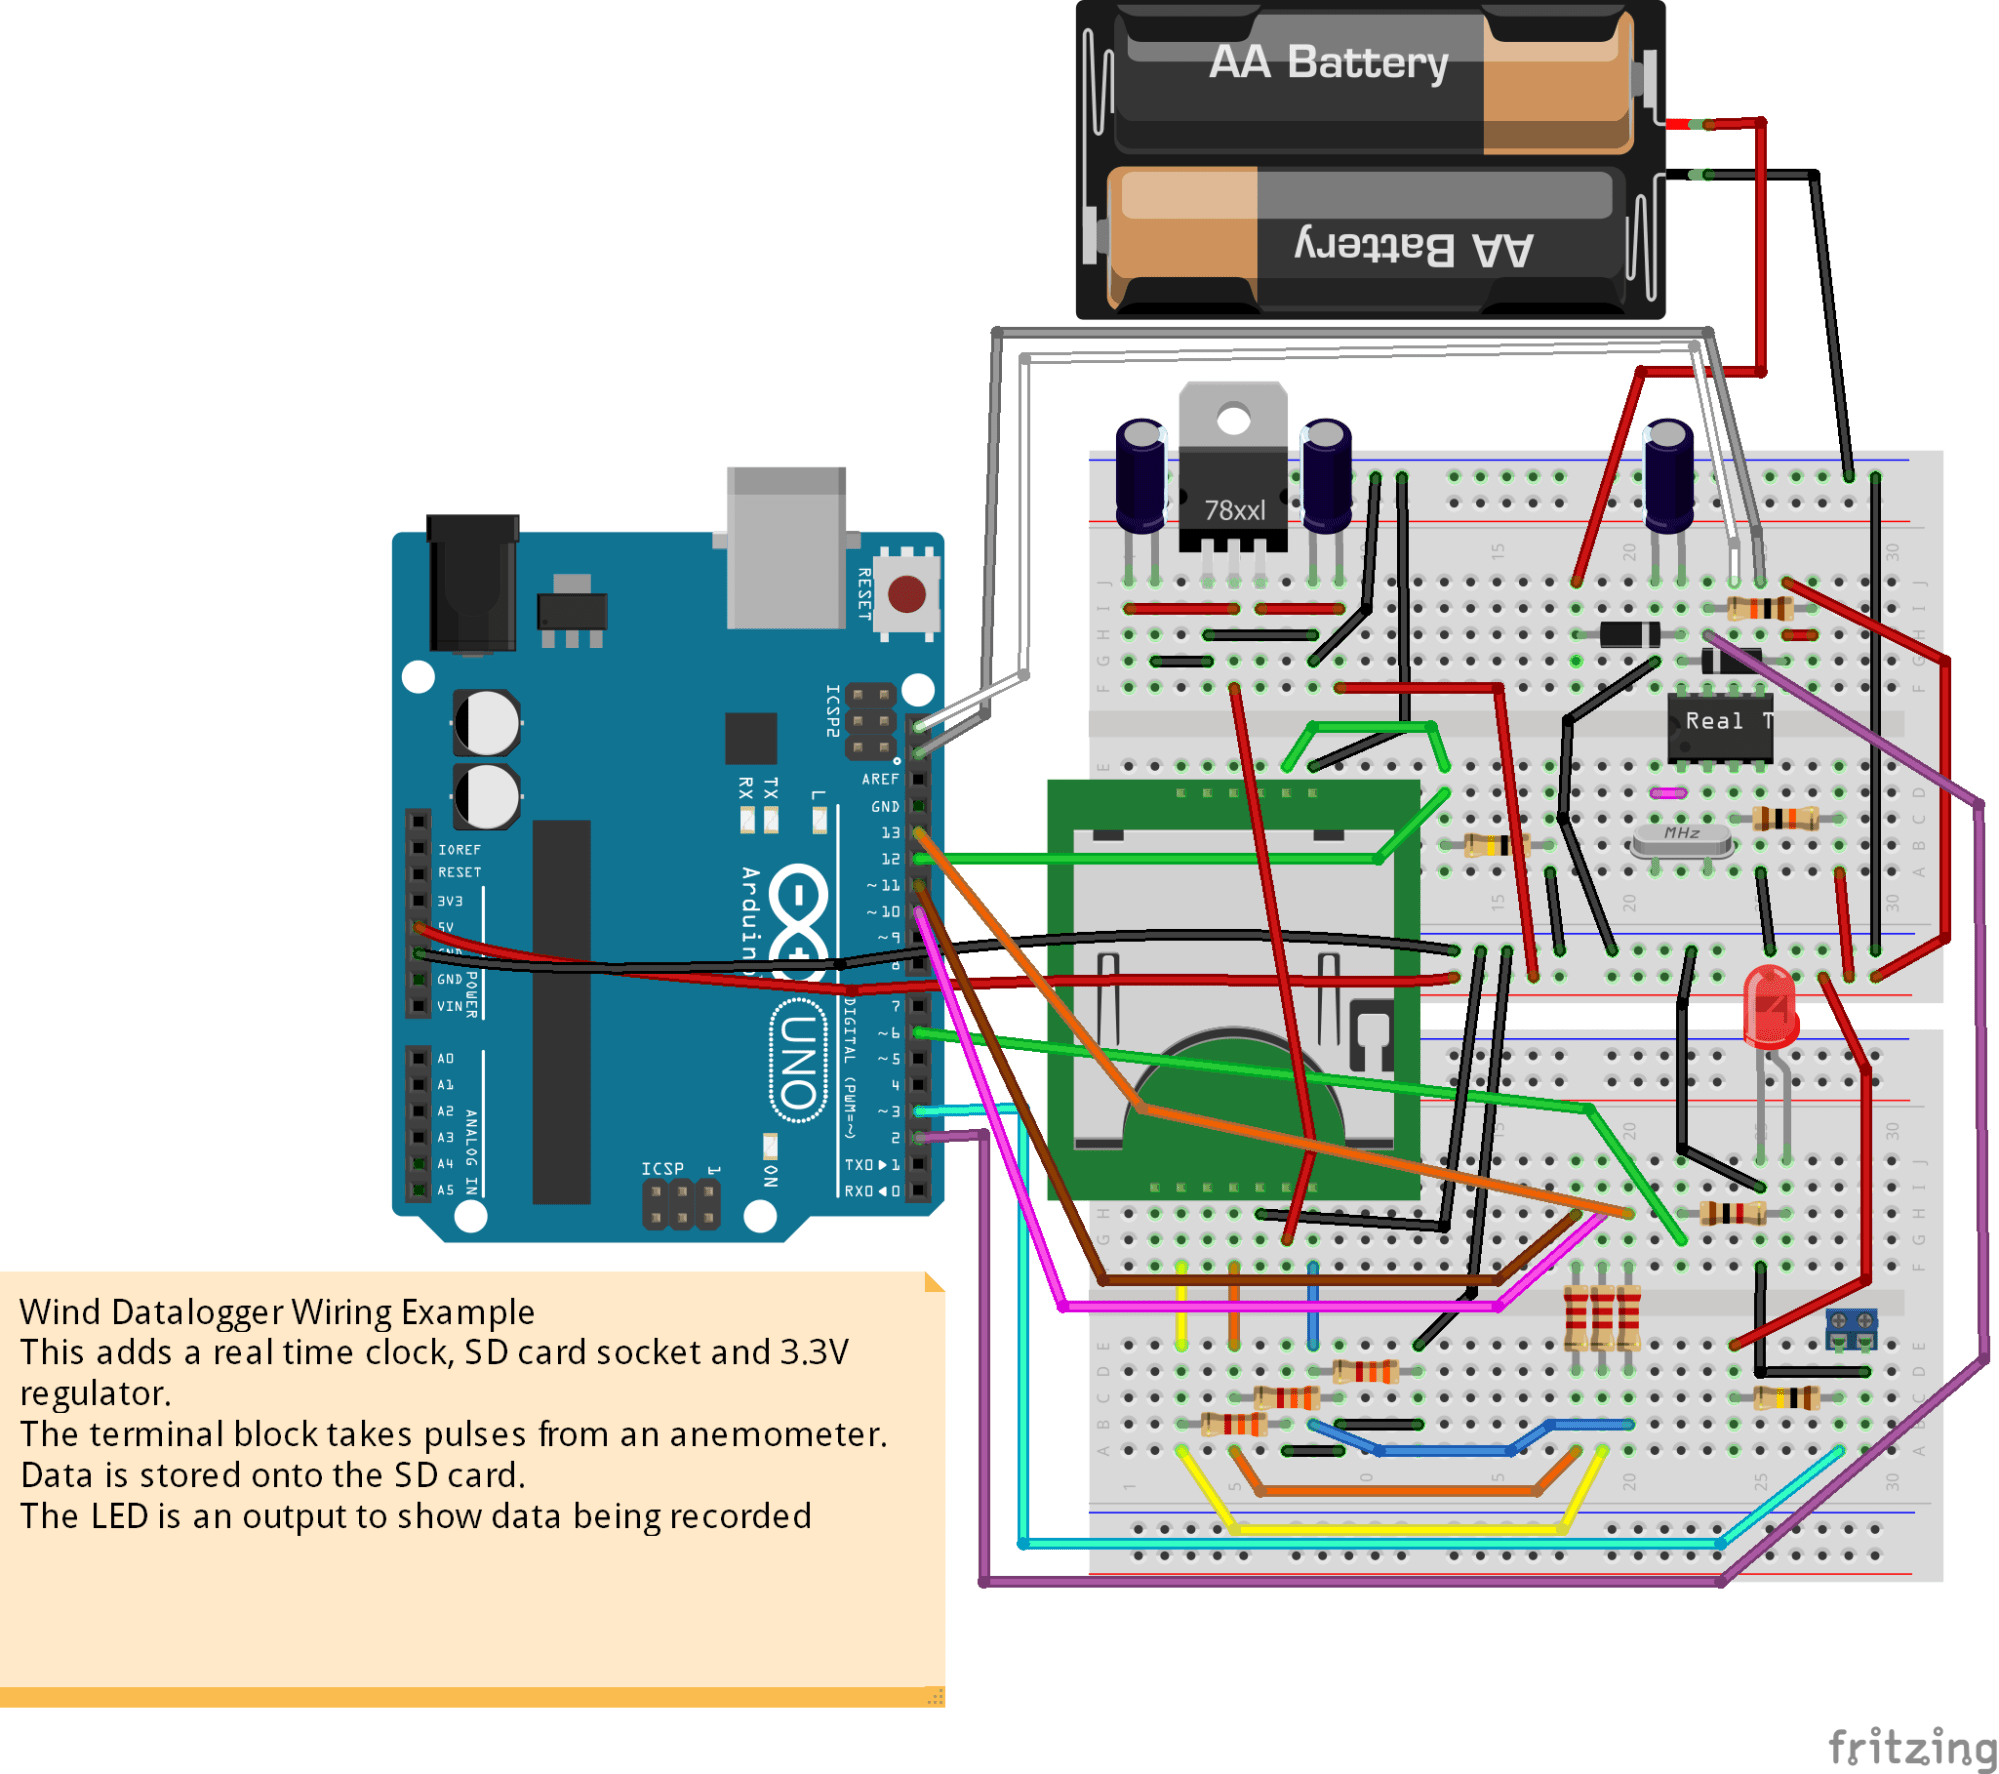 hight resolution of low cost wind datalogger renewable energy innovation wiring diagram wind power plant schematic diagram temp gauge wiring